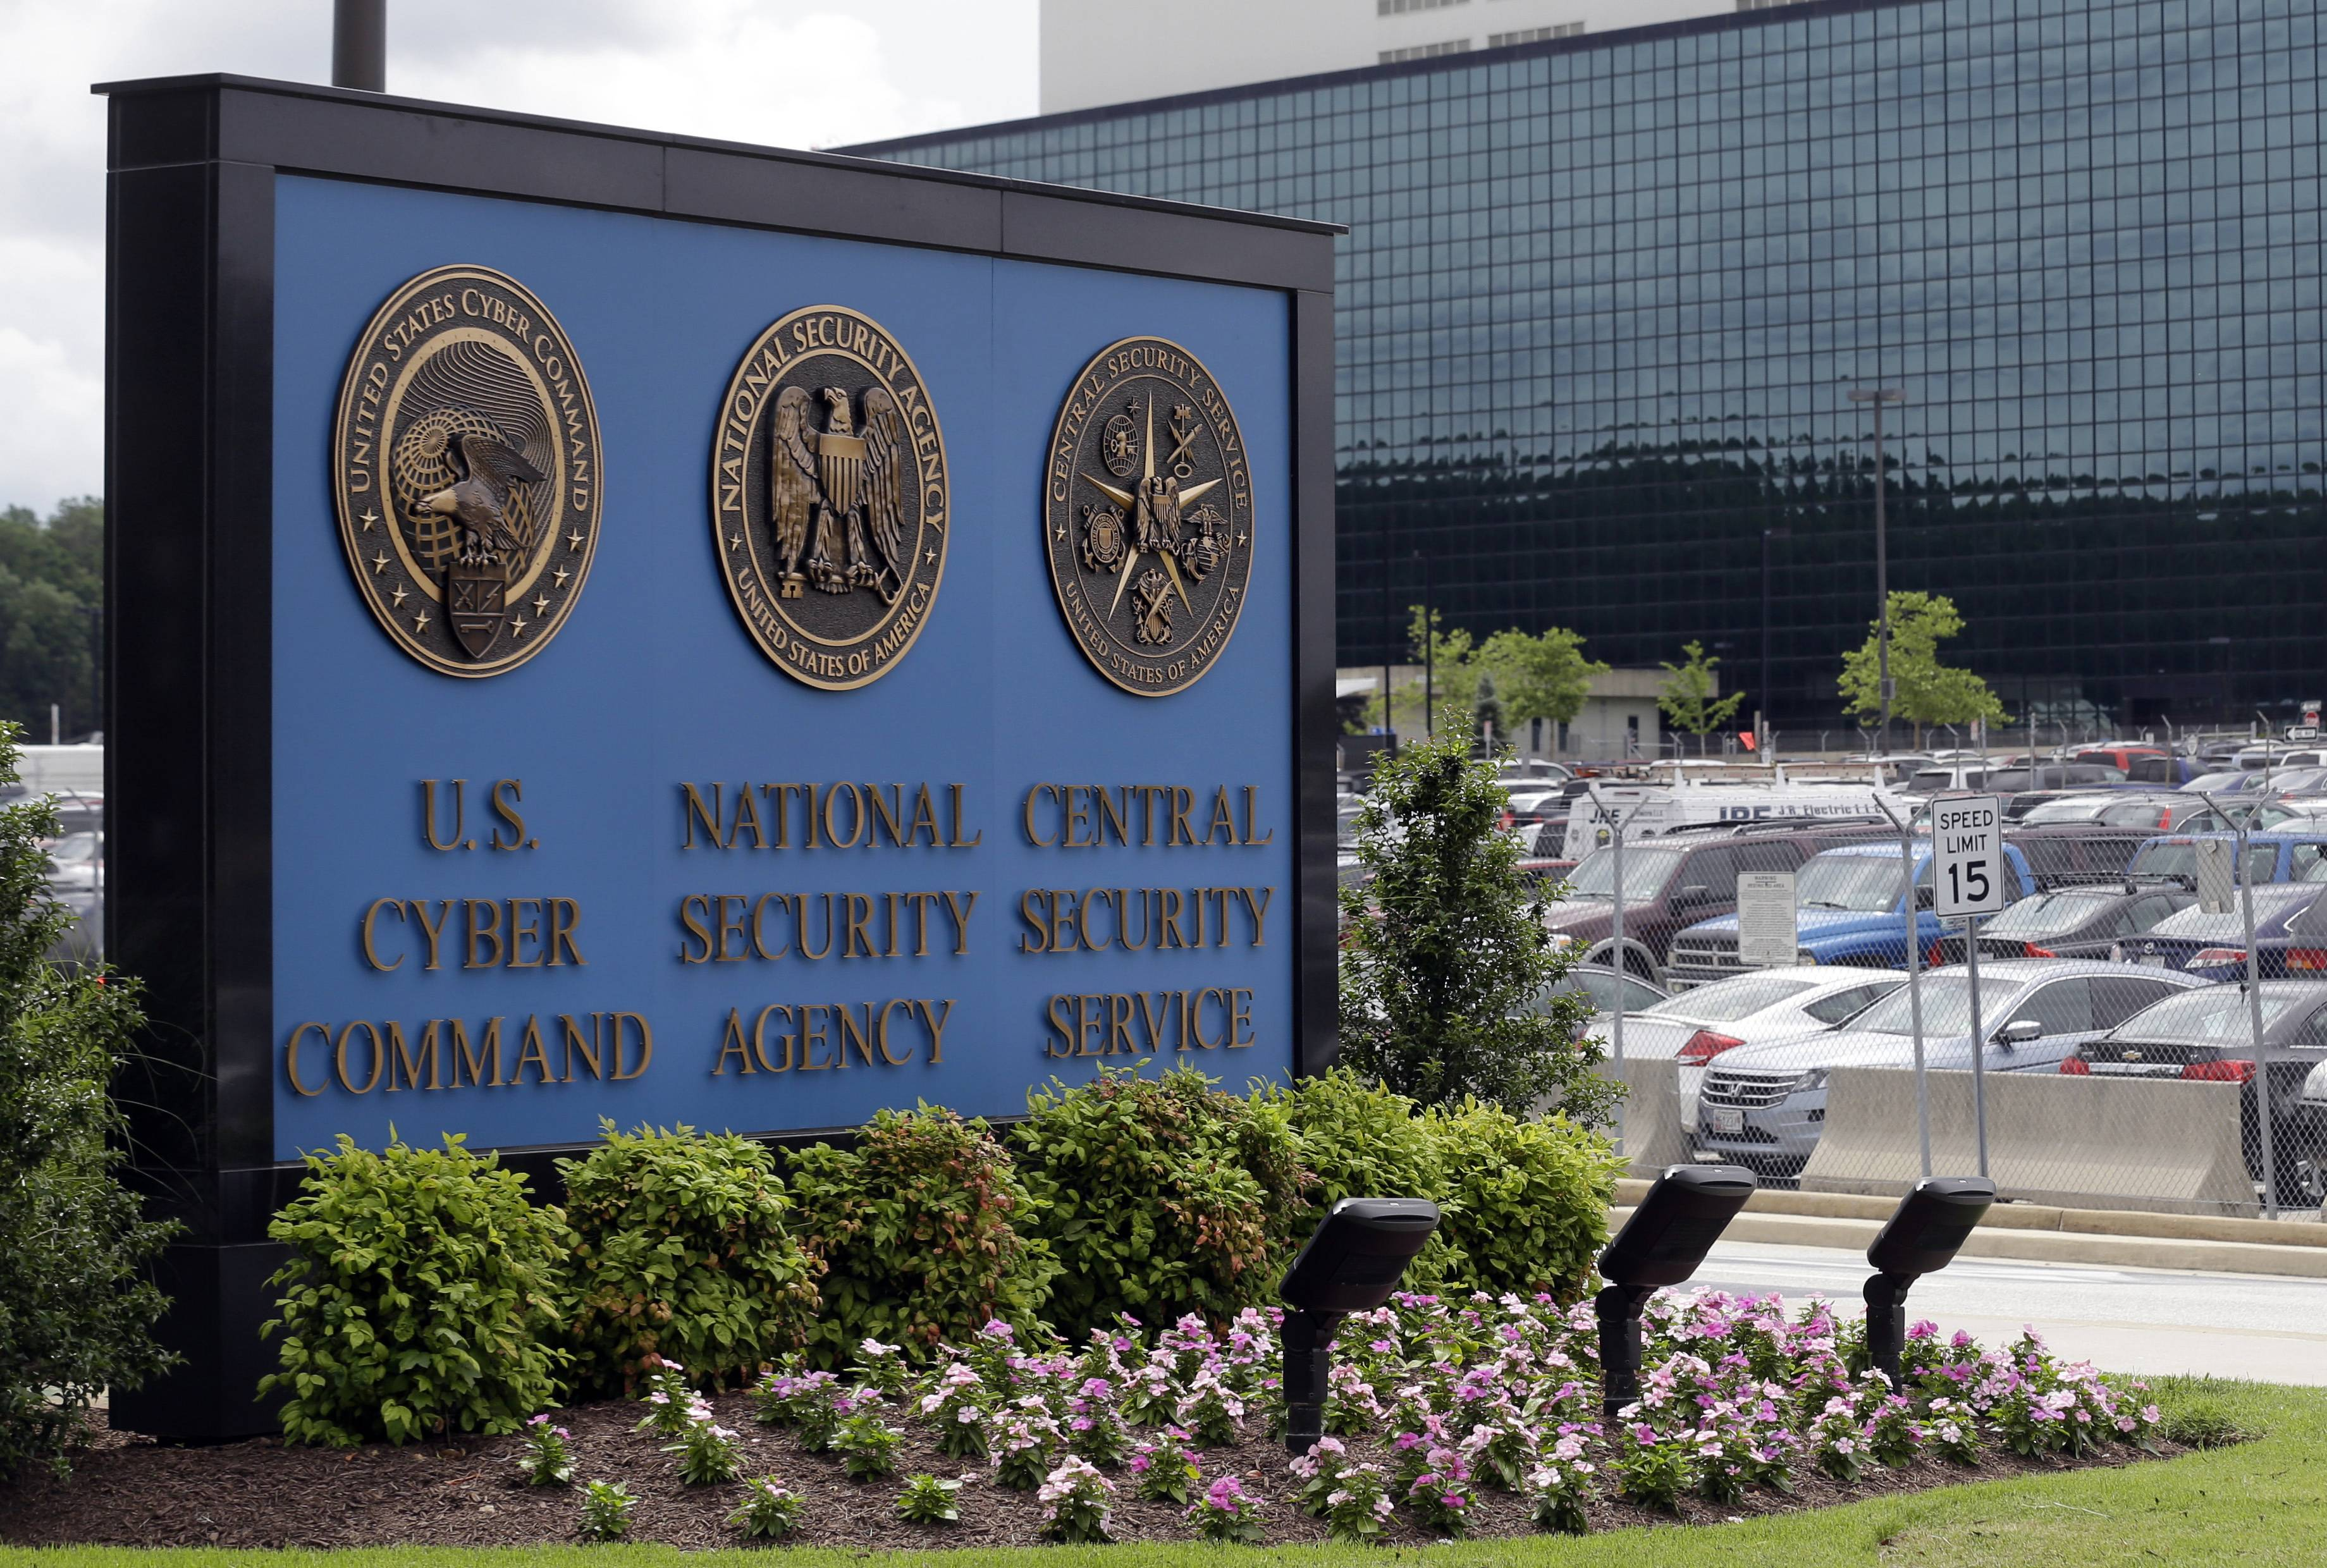 The sign outside the National Security Agency campus in Fort Meade, Md. The House today passed legislation to end the National Security Agency's bulk collection of American phone records, the first legislative response to the disclosures by former NSA contractor Edward Snowden.